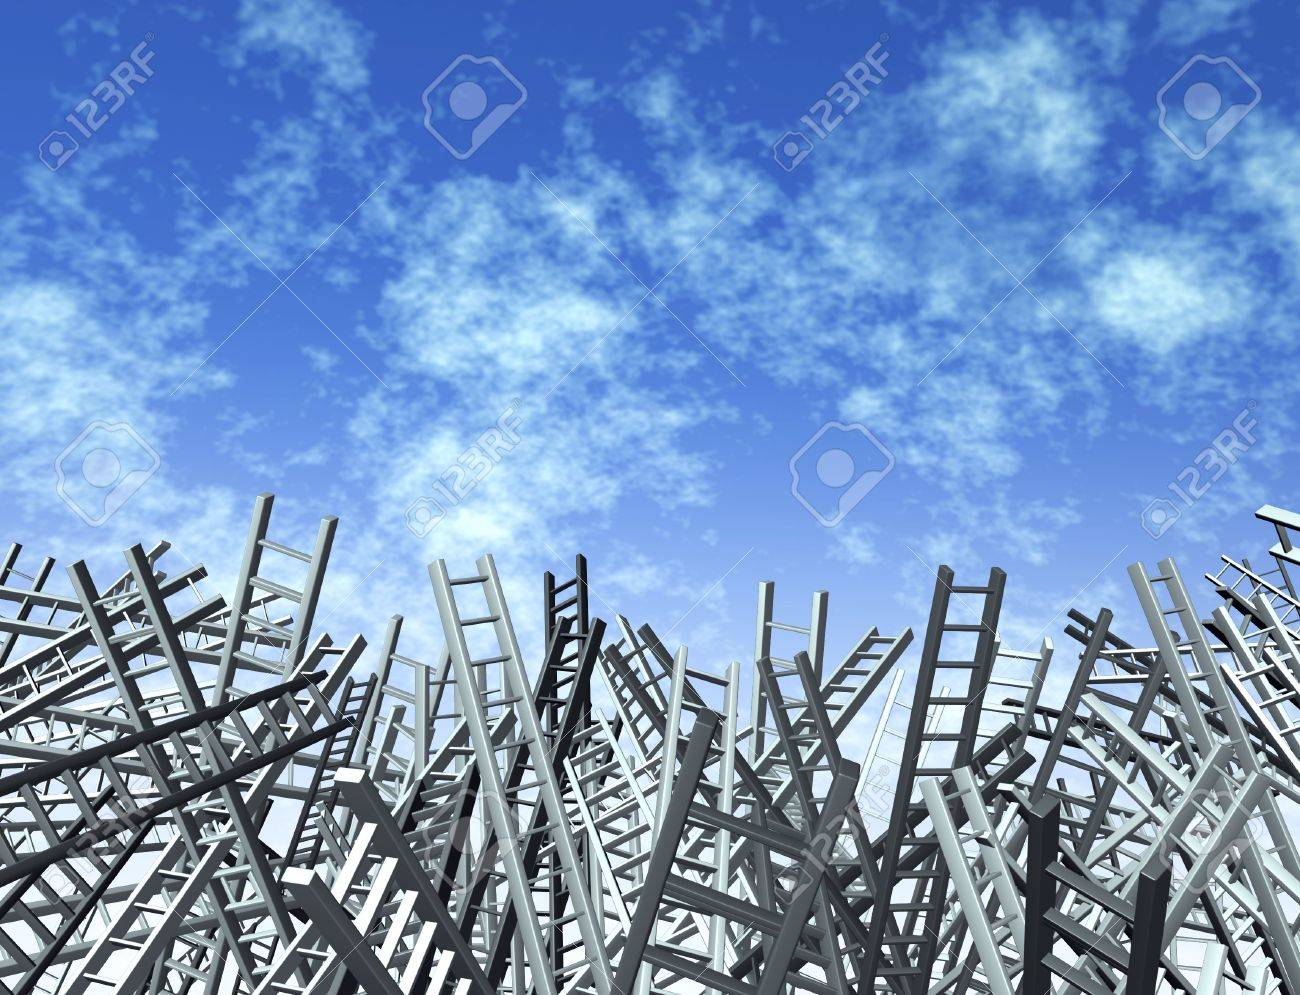 Ladders in disoriented directions as a business and financial icon of uncertainty and obstacles Stock Photo - 12667498